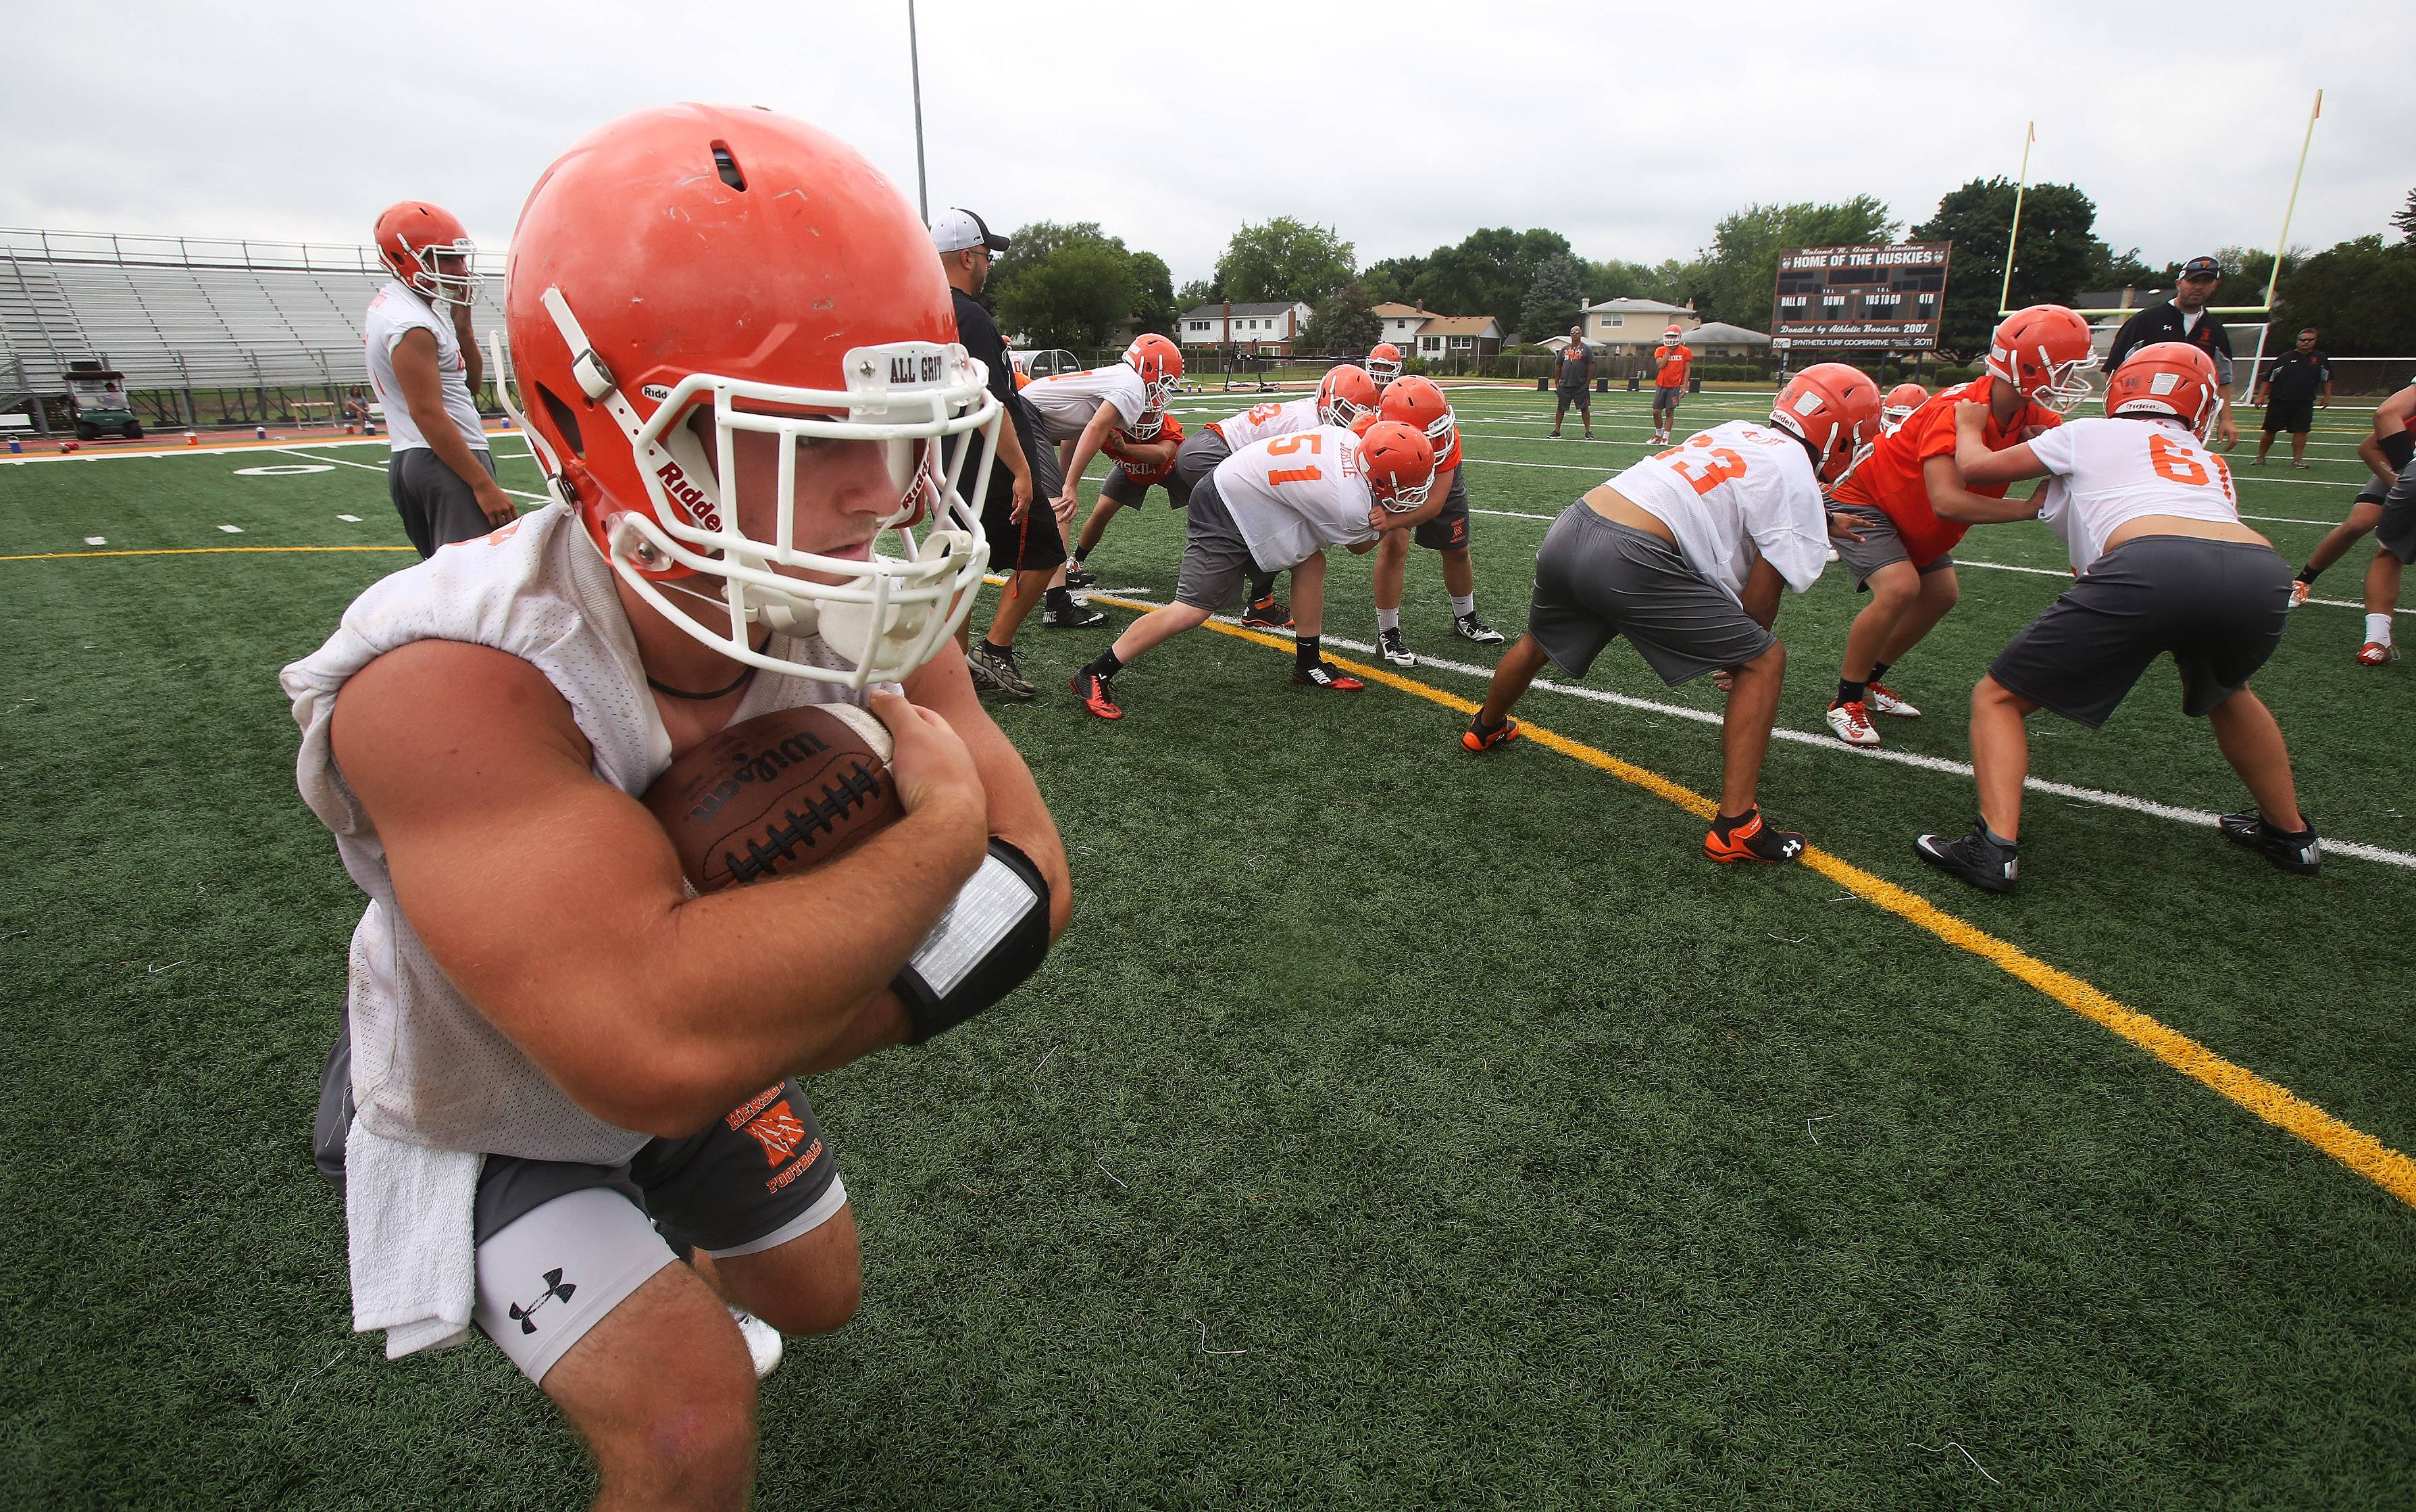 Hersey hoping to stay on top